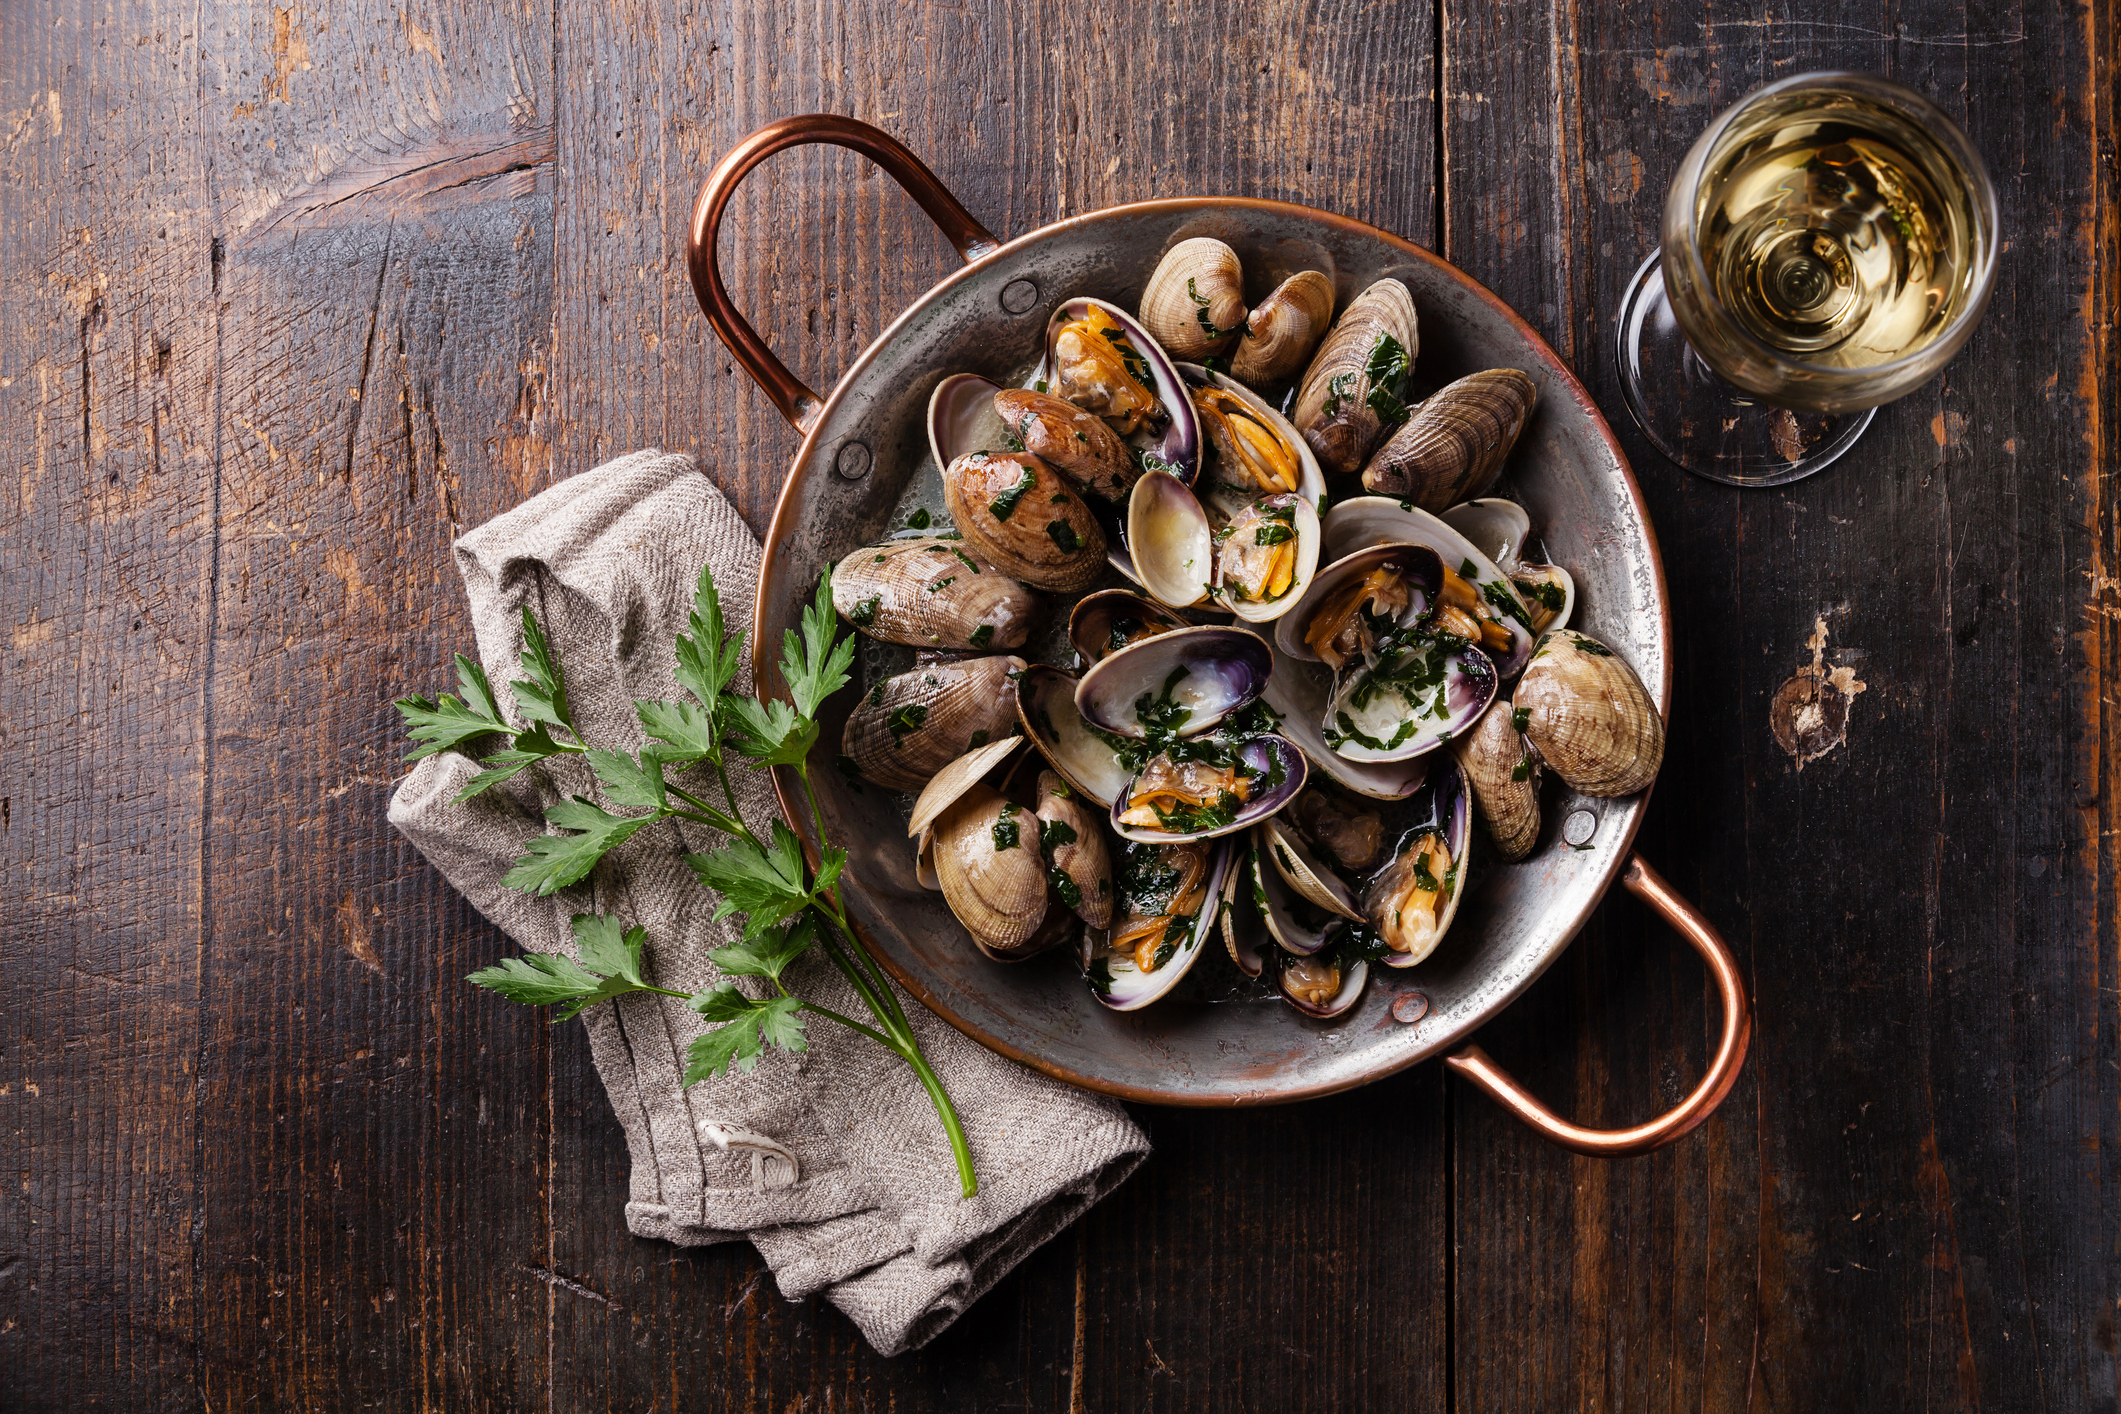 Silo Terrace Oyster Bar To Win Best Seafood in San Antonio